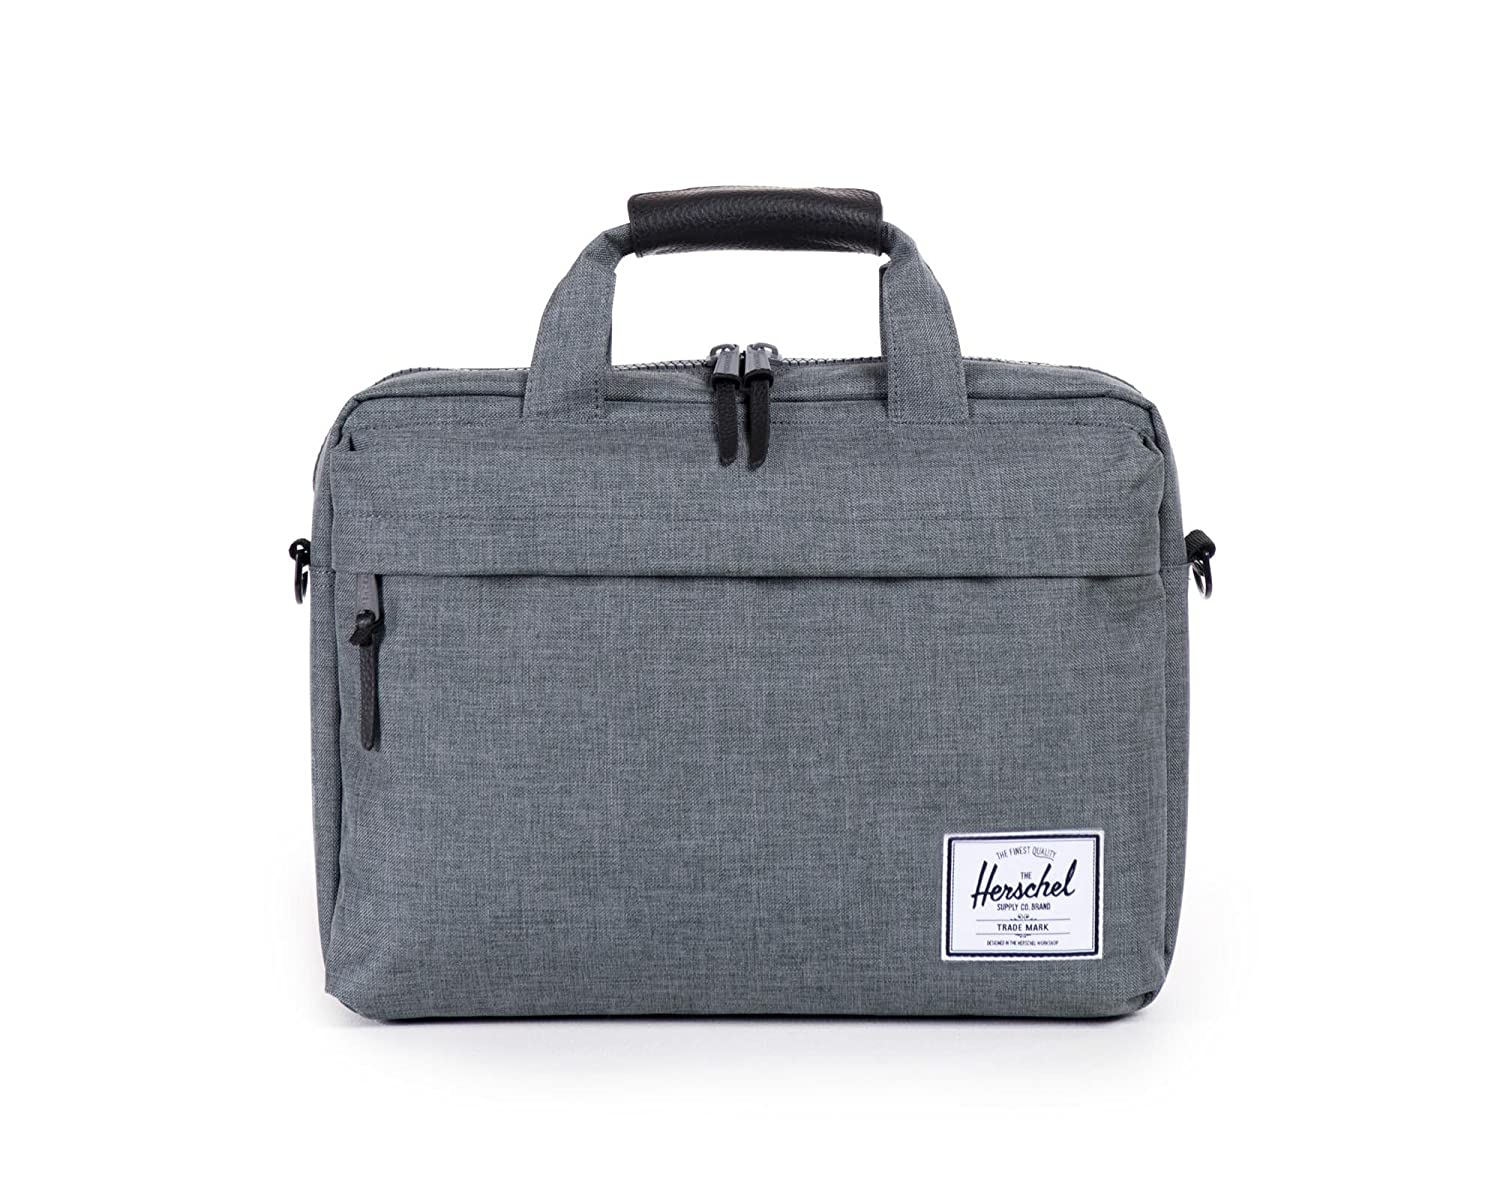 7f2897a6bb5635 Herschel Supply Co. Clark Messenger Bag, Charcoal Crosshatch, One Size:  Amazon.ca: Luggage & Bags